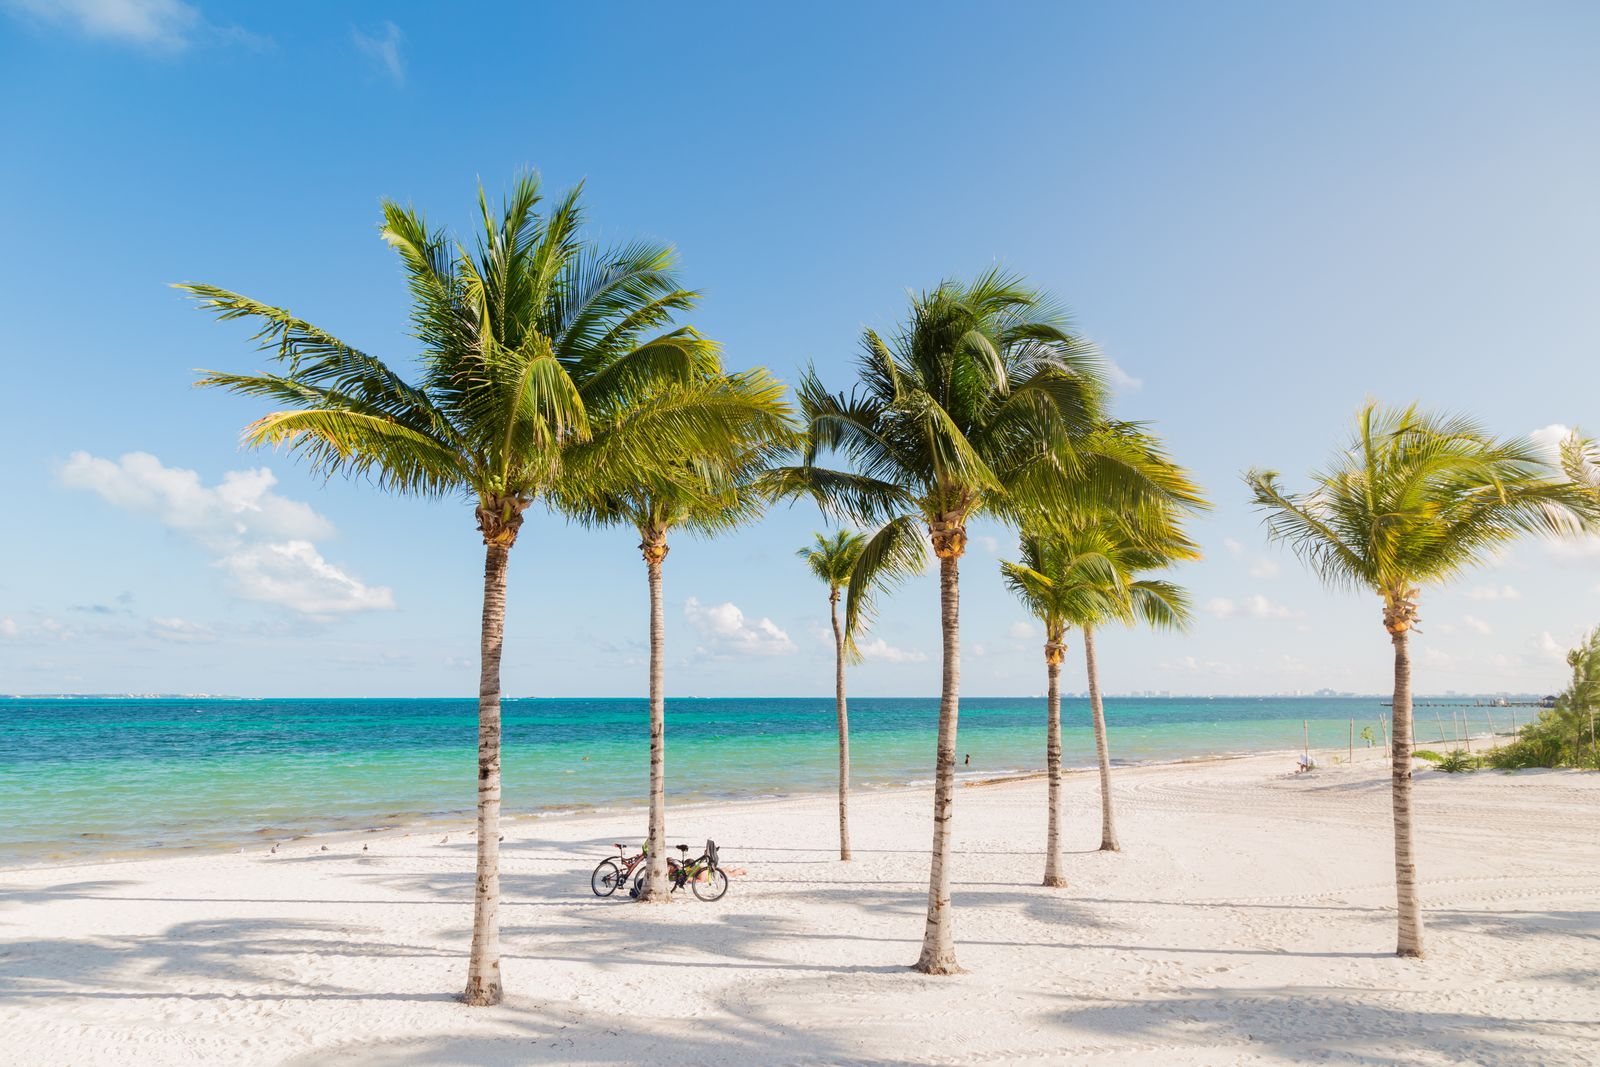 White sand beach in Cancun, Mexico, with palm trees with bicyles leaning up against them.